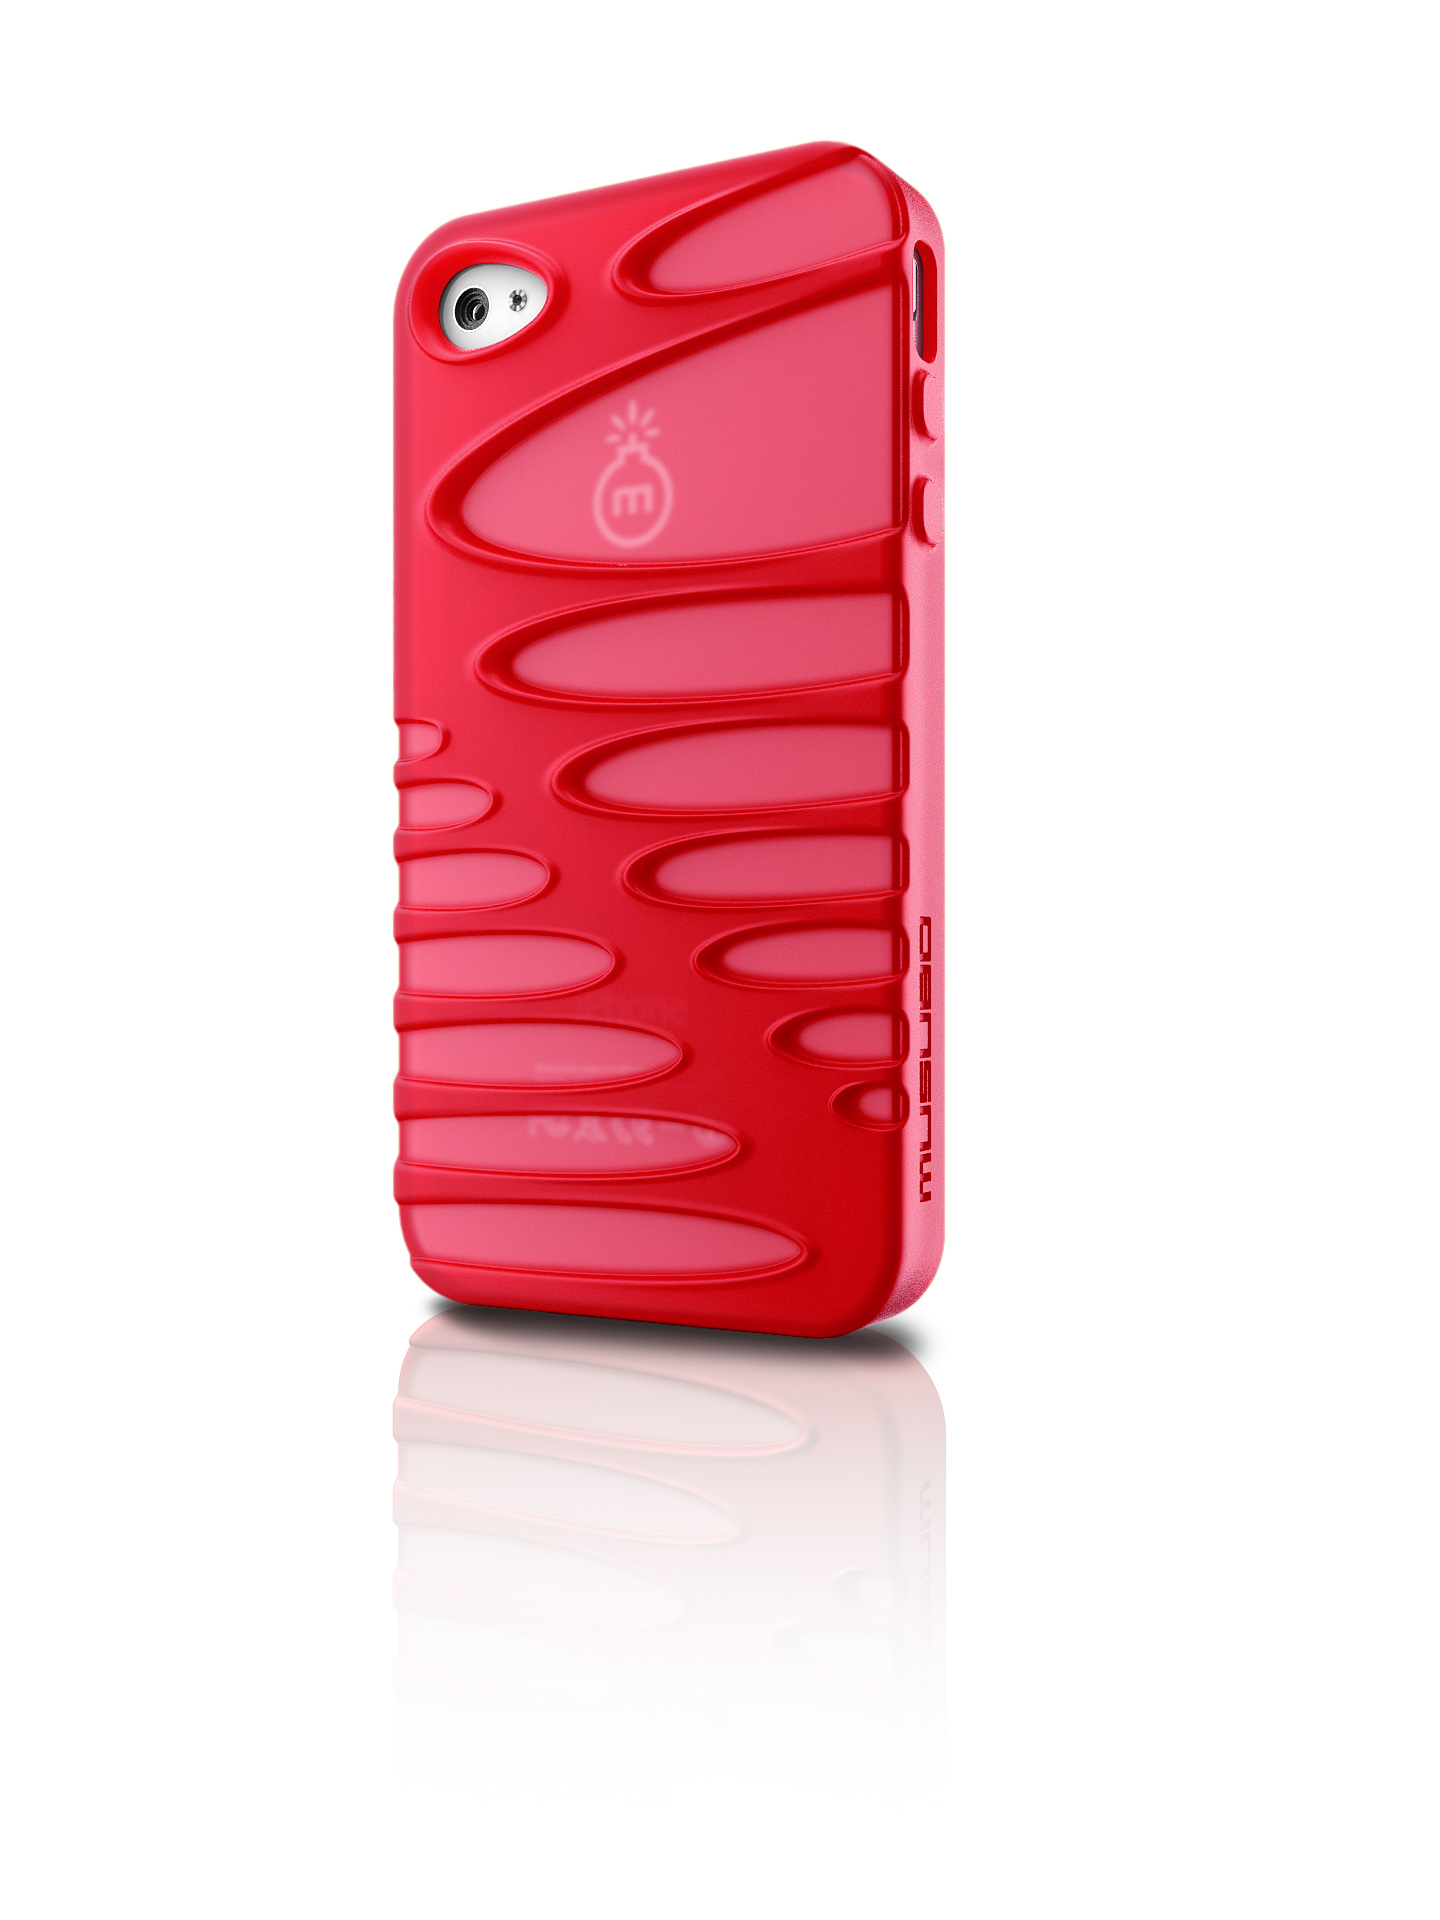 Original Musubo Case Sexy  Iphone 4S/4G Red Retail